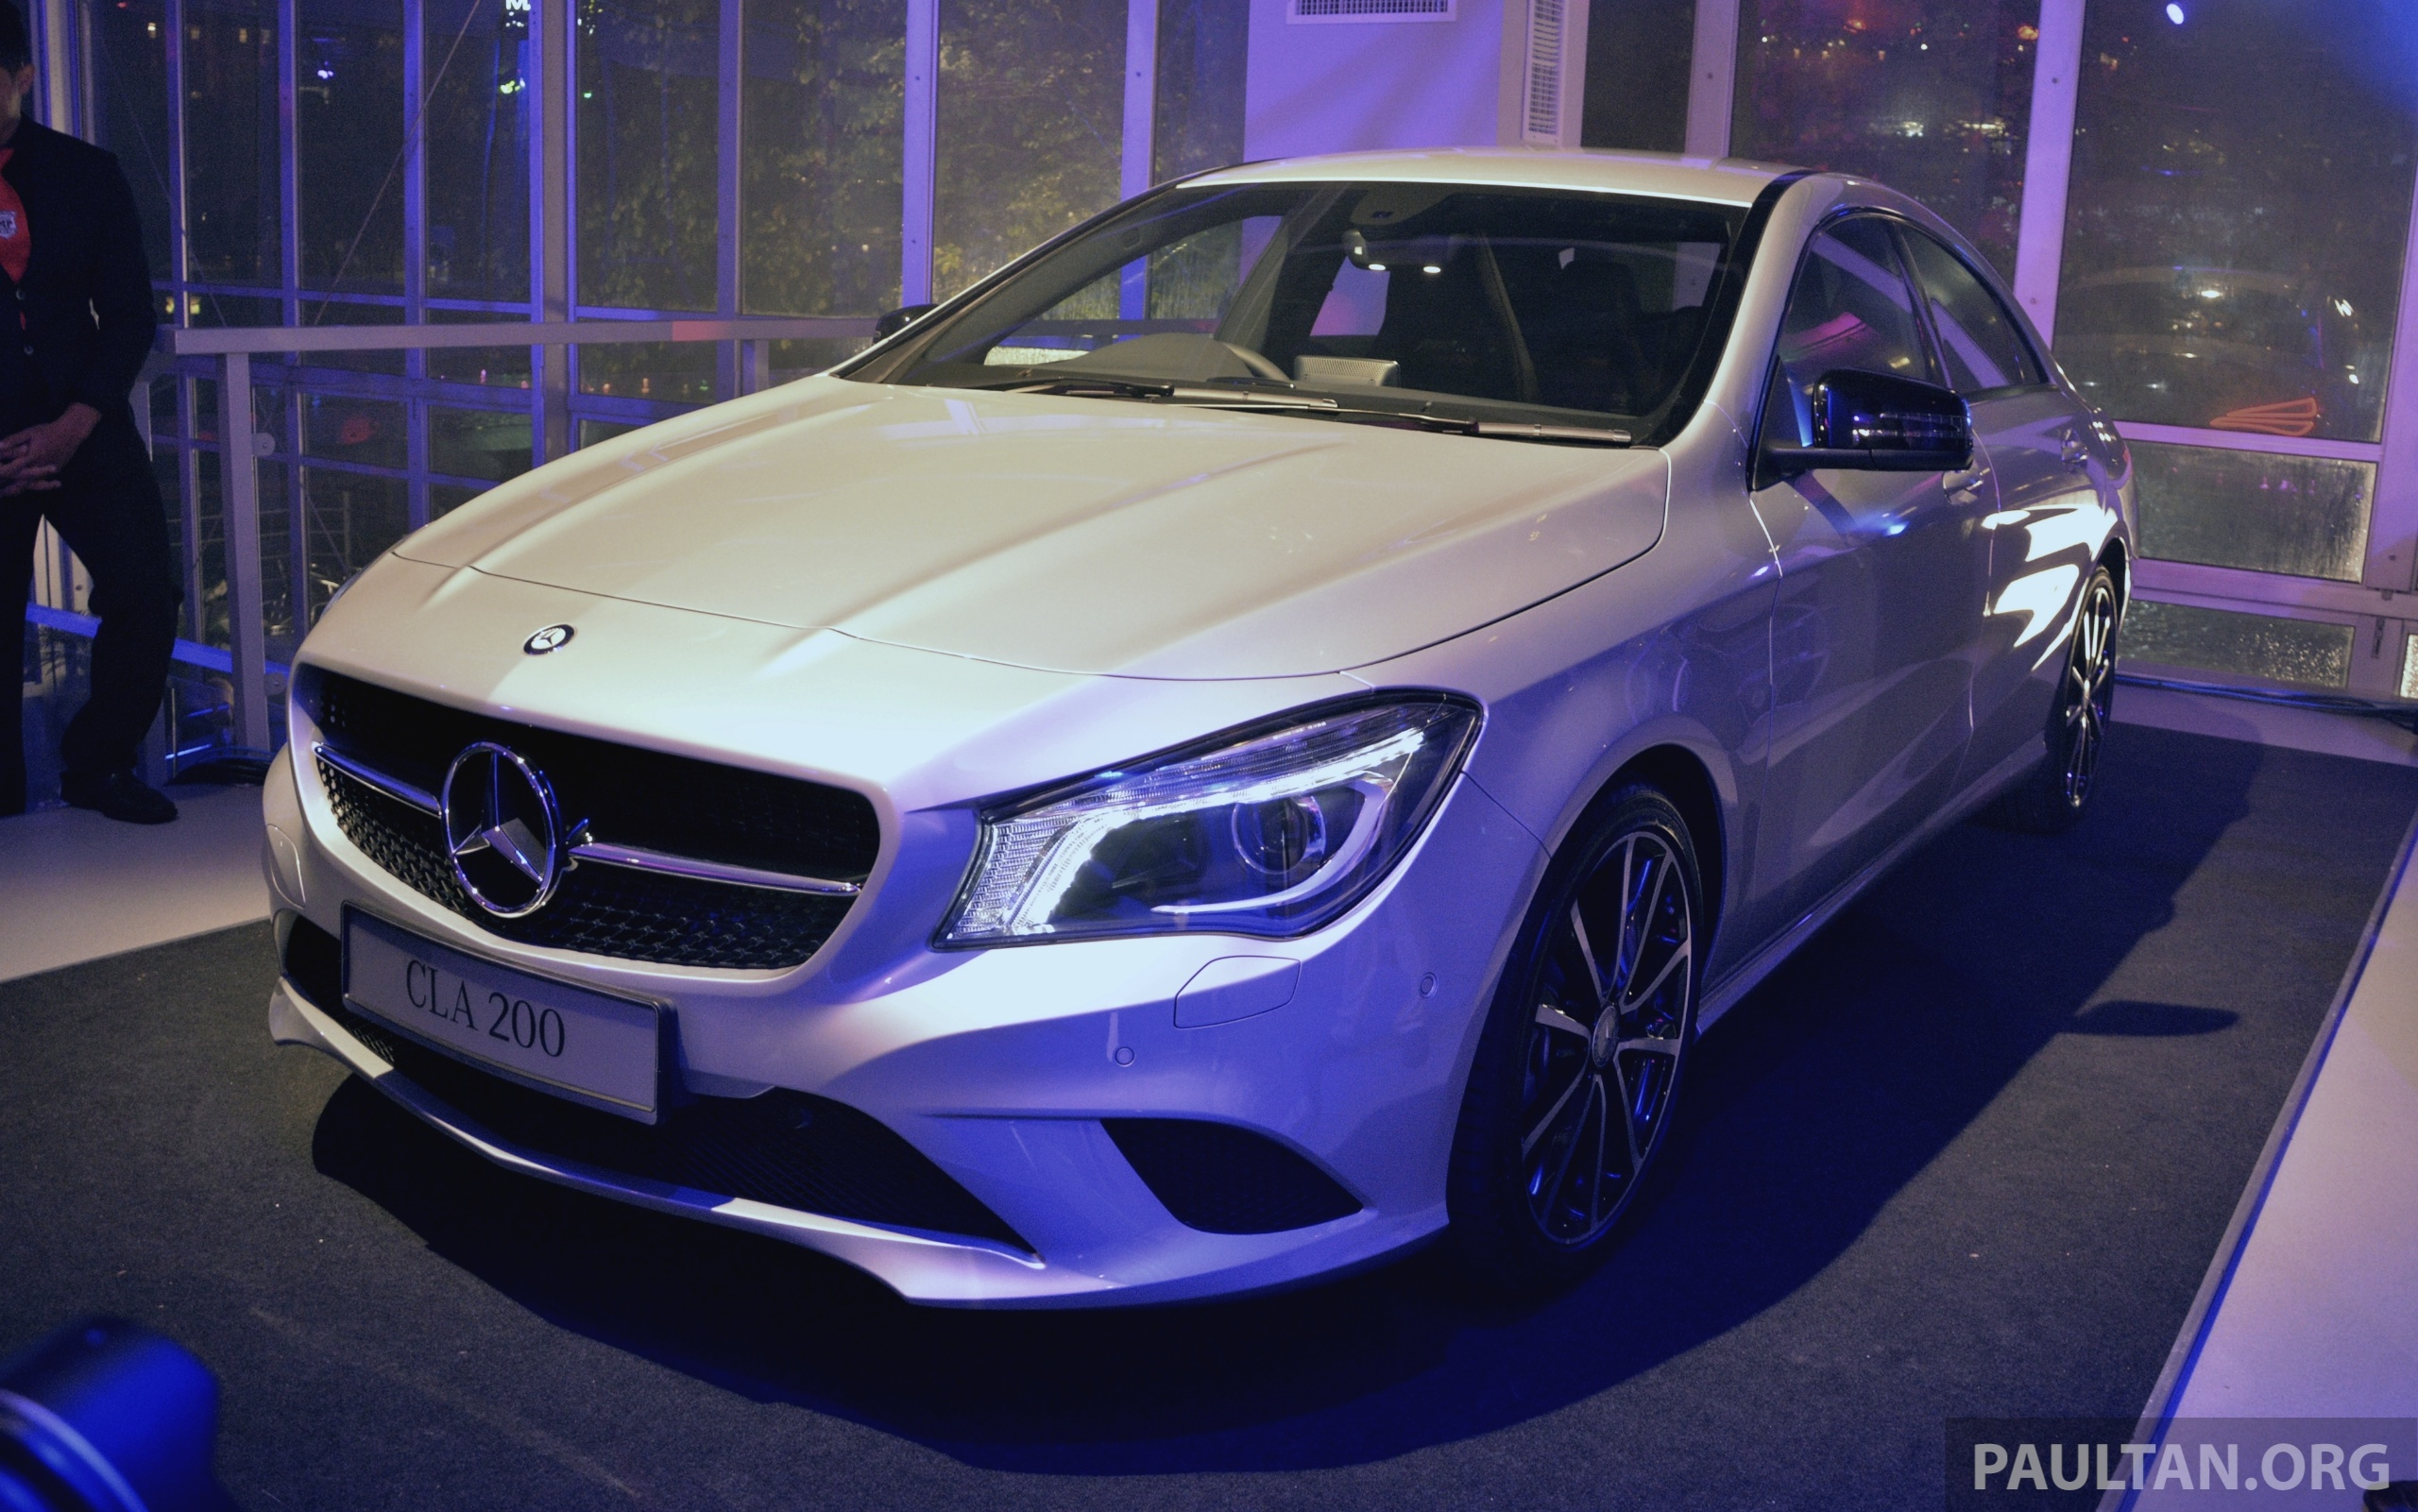 Mercedes benz cla class launched in malaysia cla 200 for Mercedes benz cla 200 price